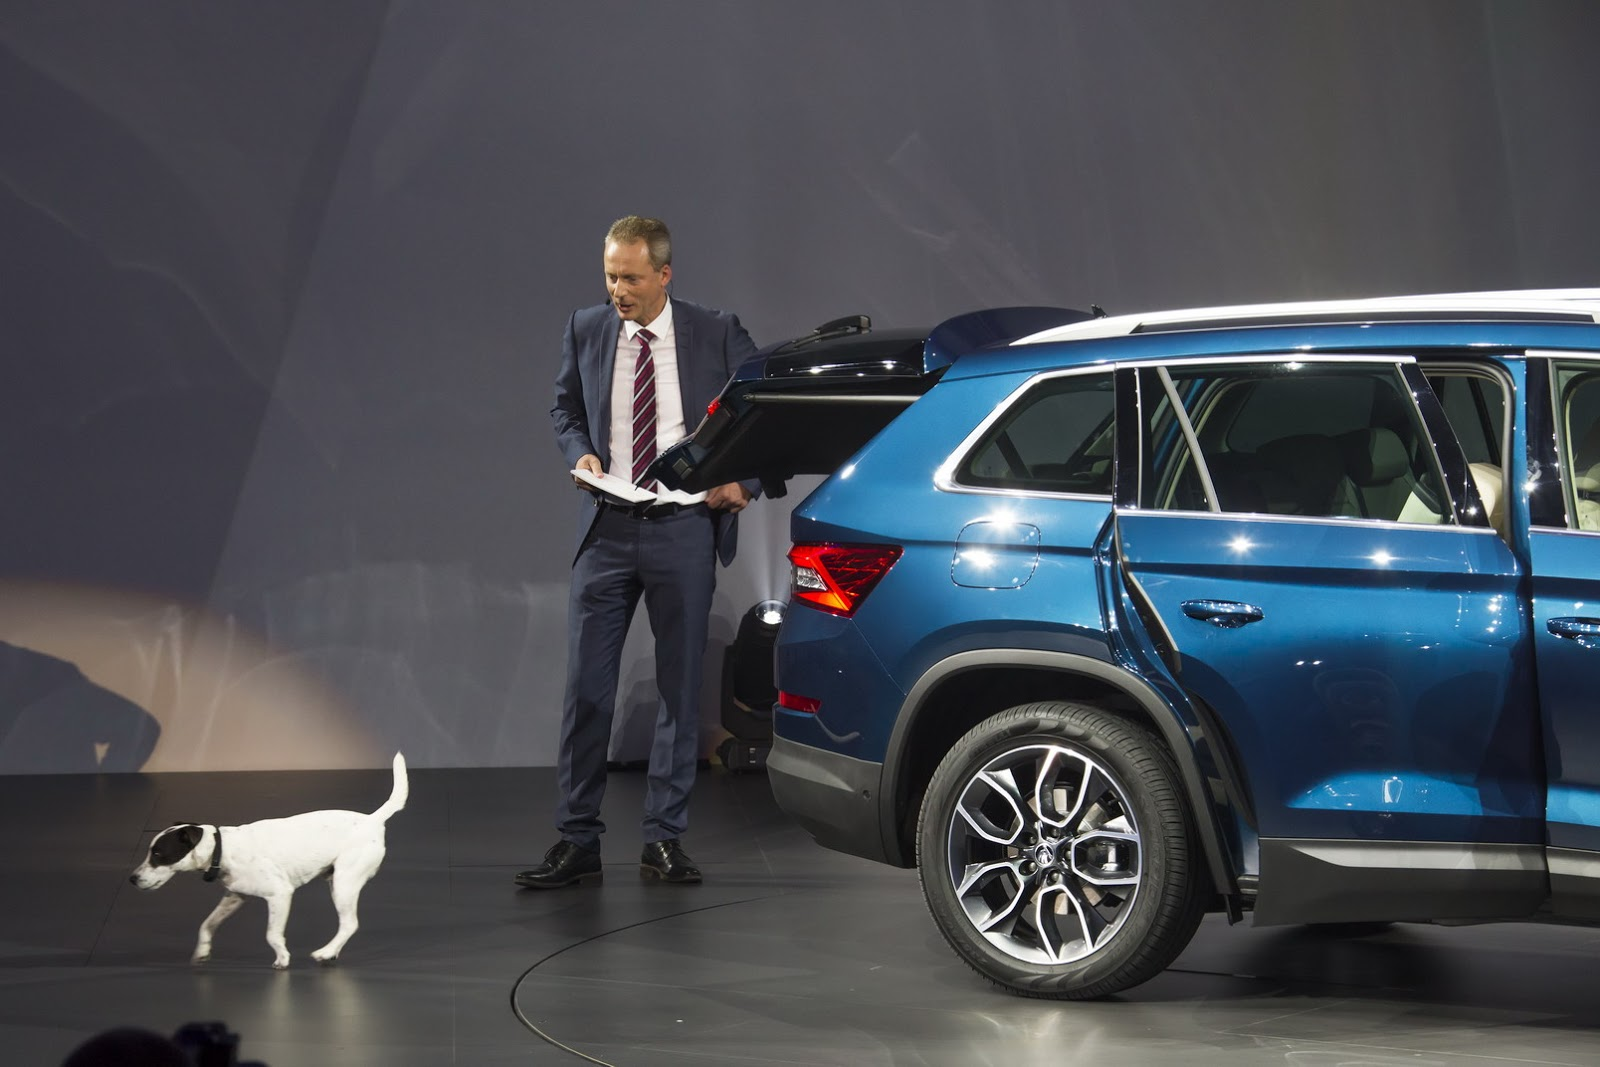 skoda to decide on possible u s launch by next fall carscoops. Black Bedroom Furniture Sets. Home Design Ideas